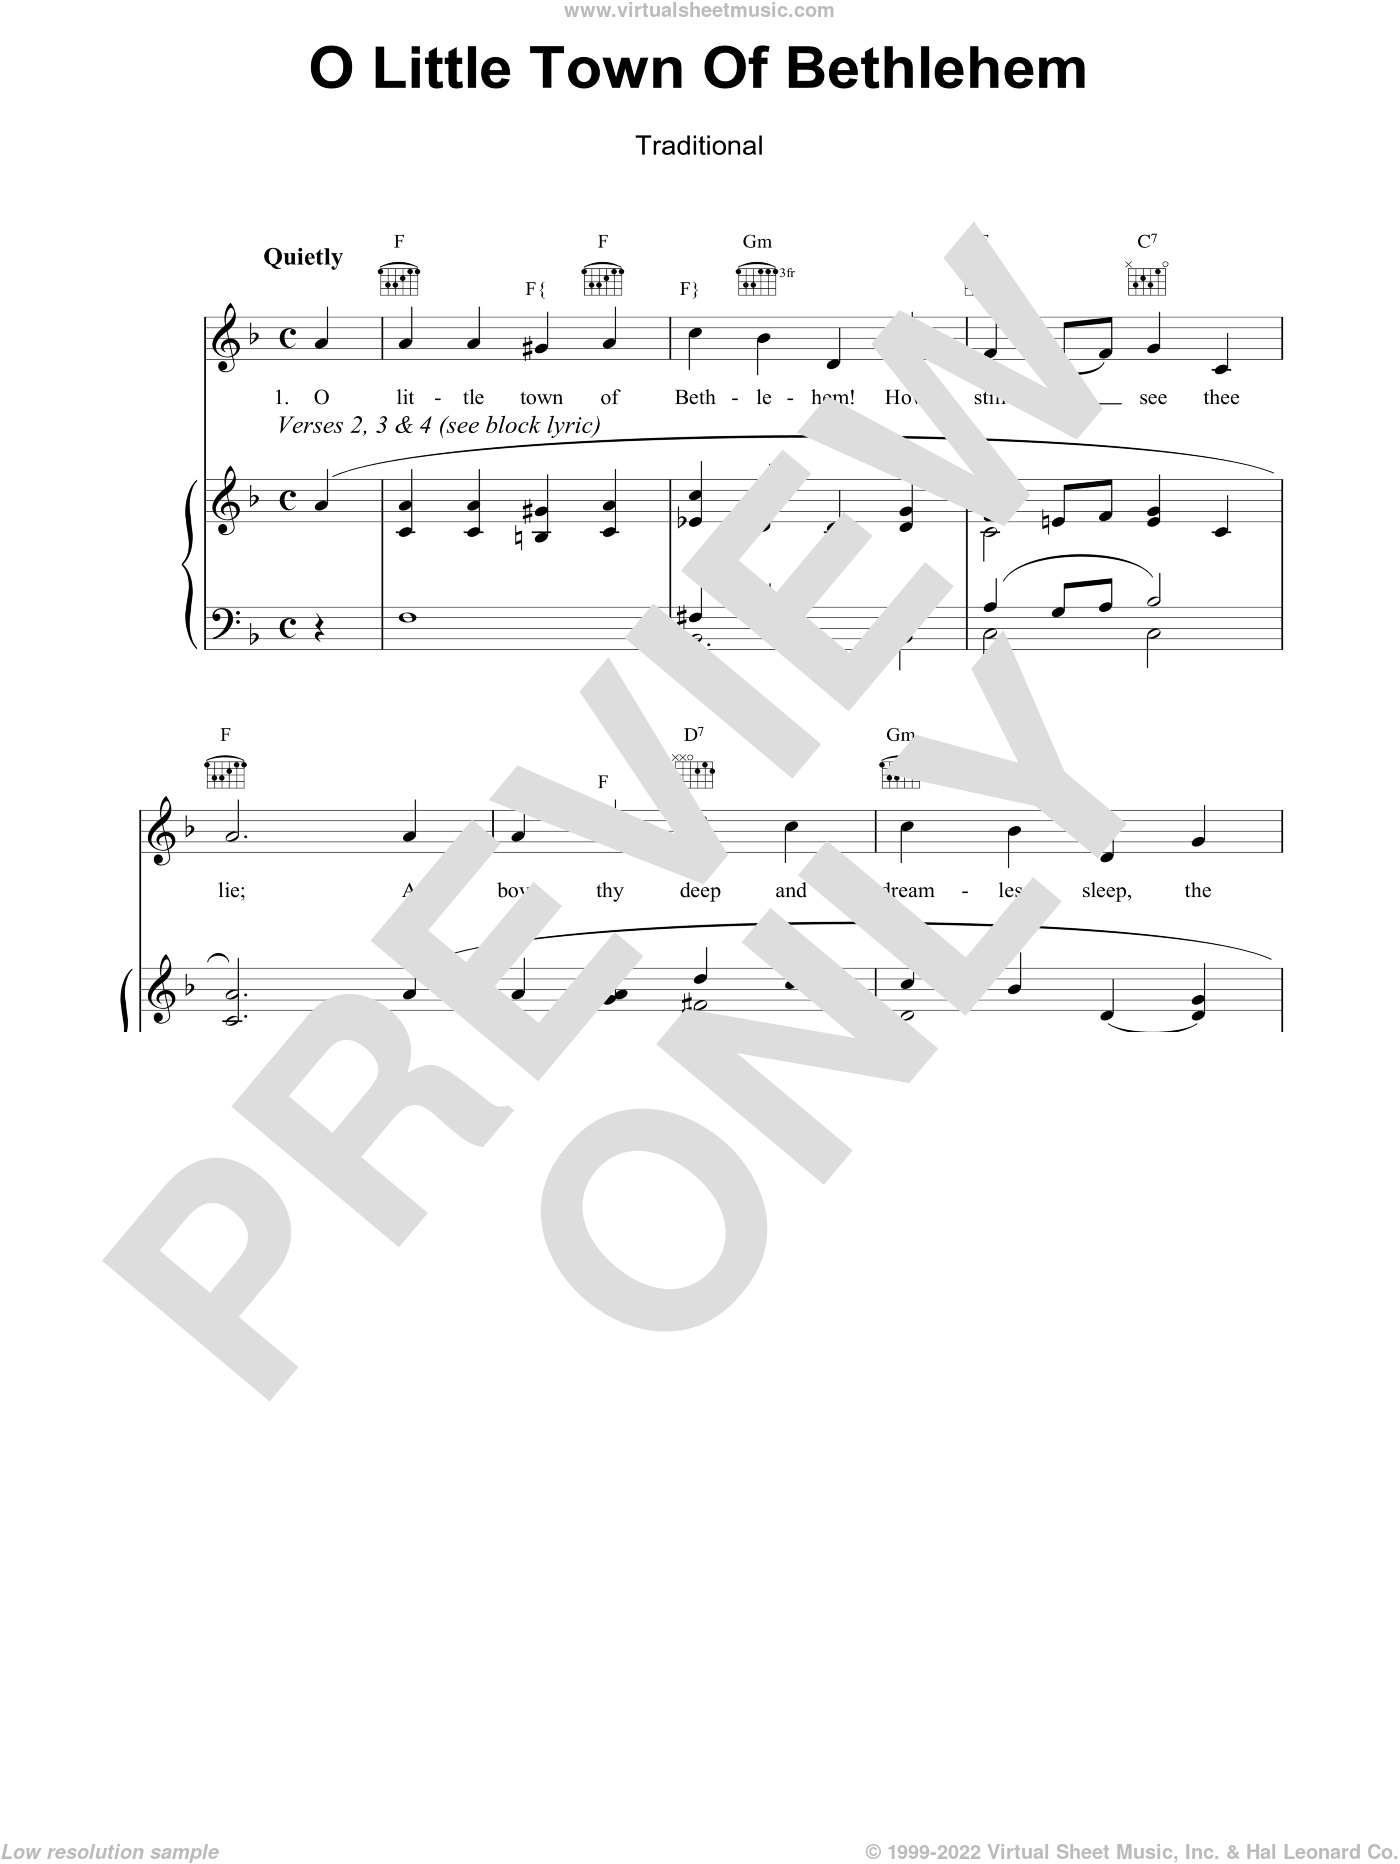 O Little Town Of Bethlehem sheet music for voice, piano or guitar by Phillips Brooks. Score Image Preview.